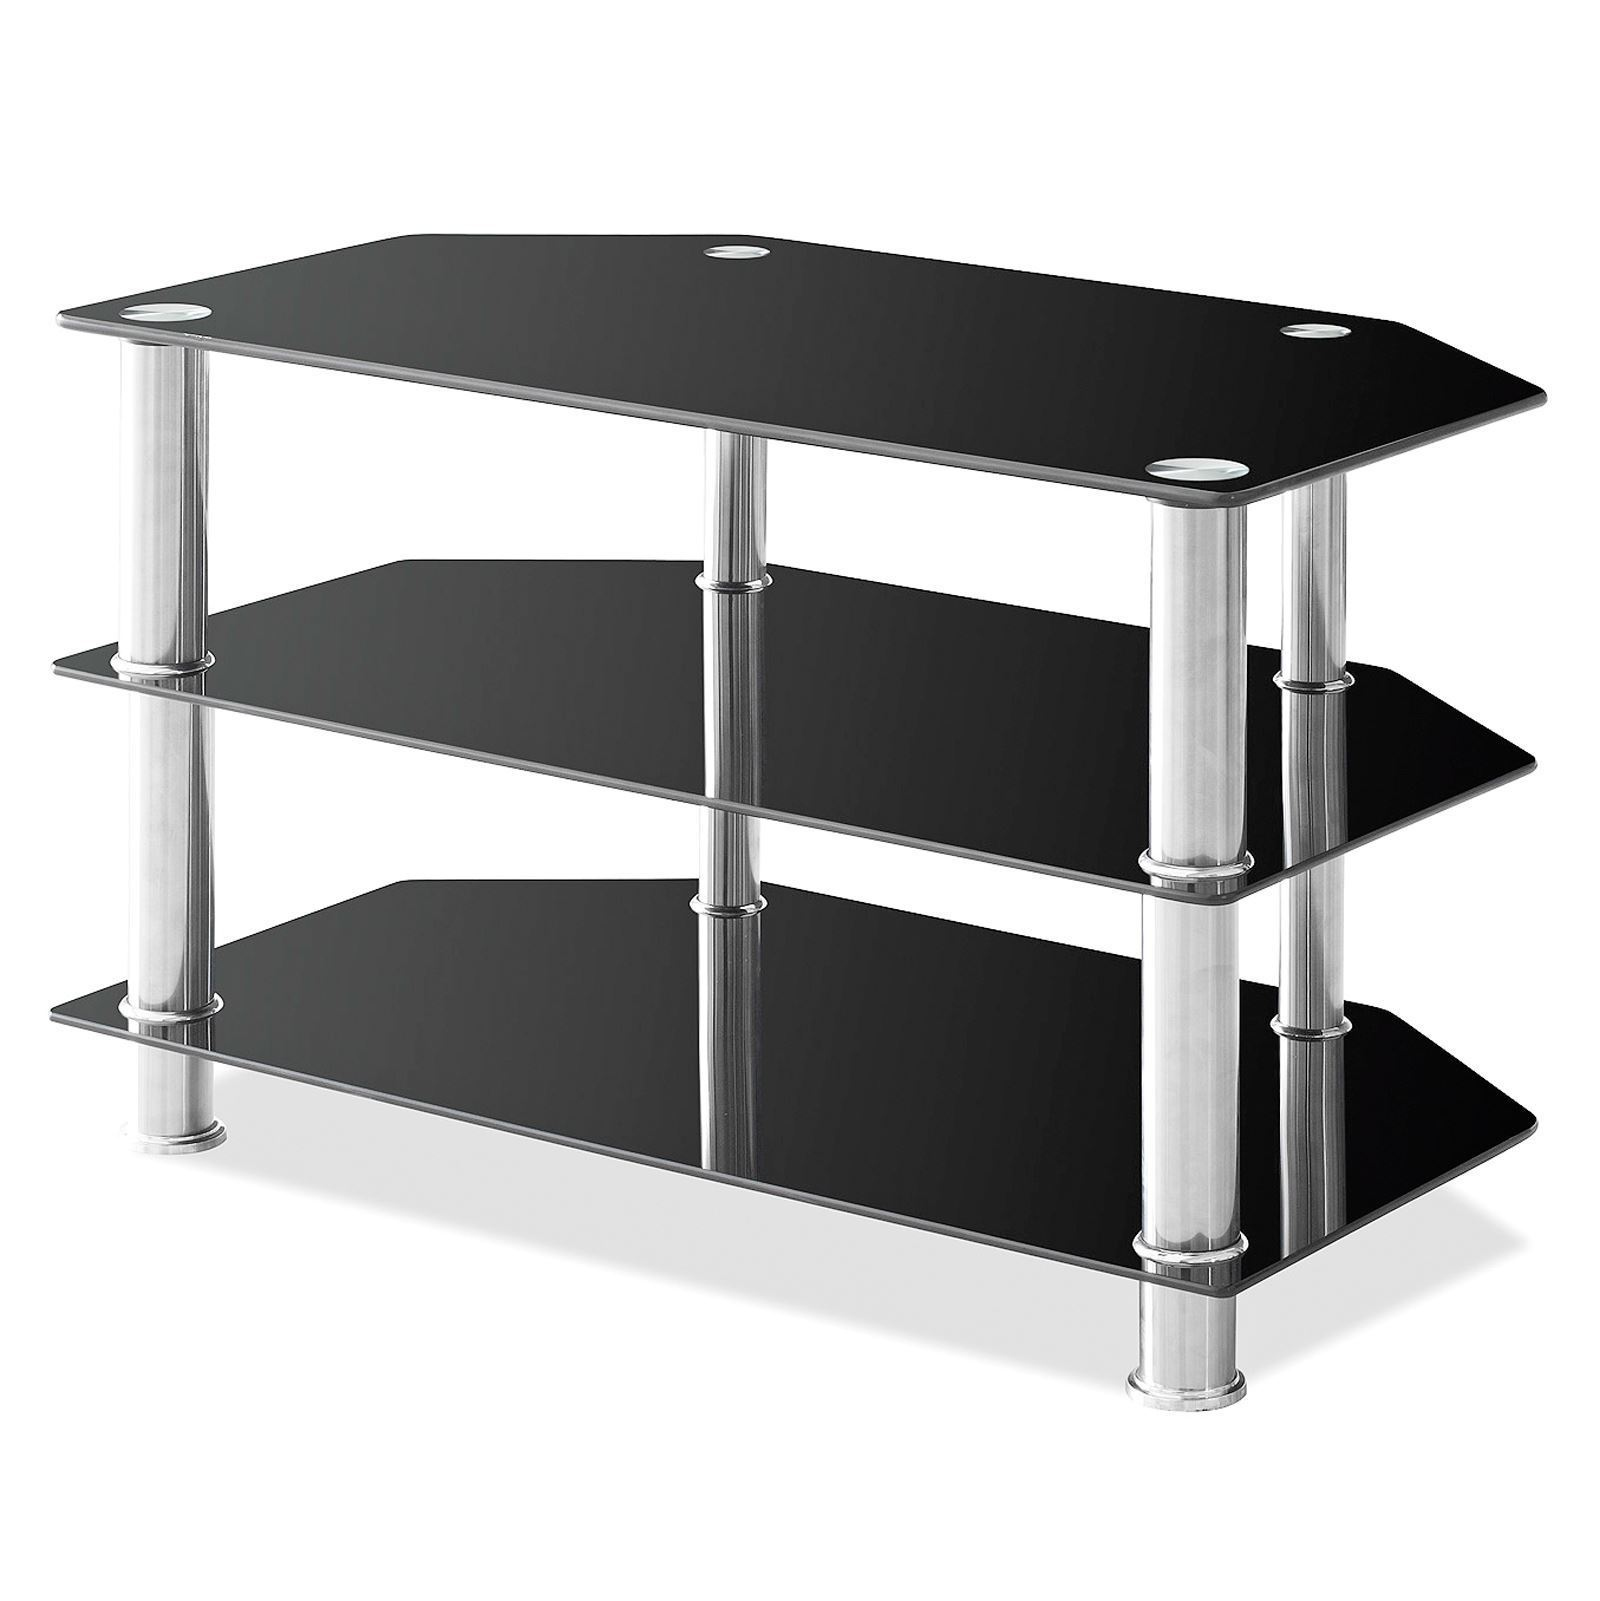 Glass Shelf Tv Unit Dvd Black 2 3 4 Tier Stainless Steel Living  # Meuble Tv Metal Noir